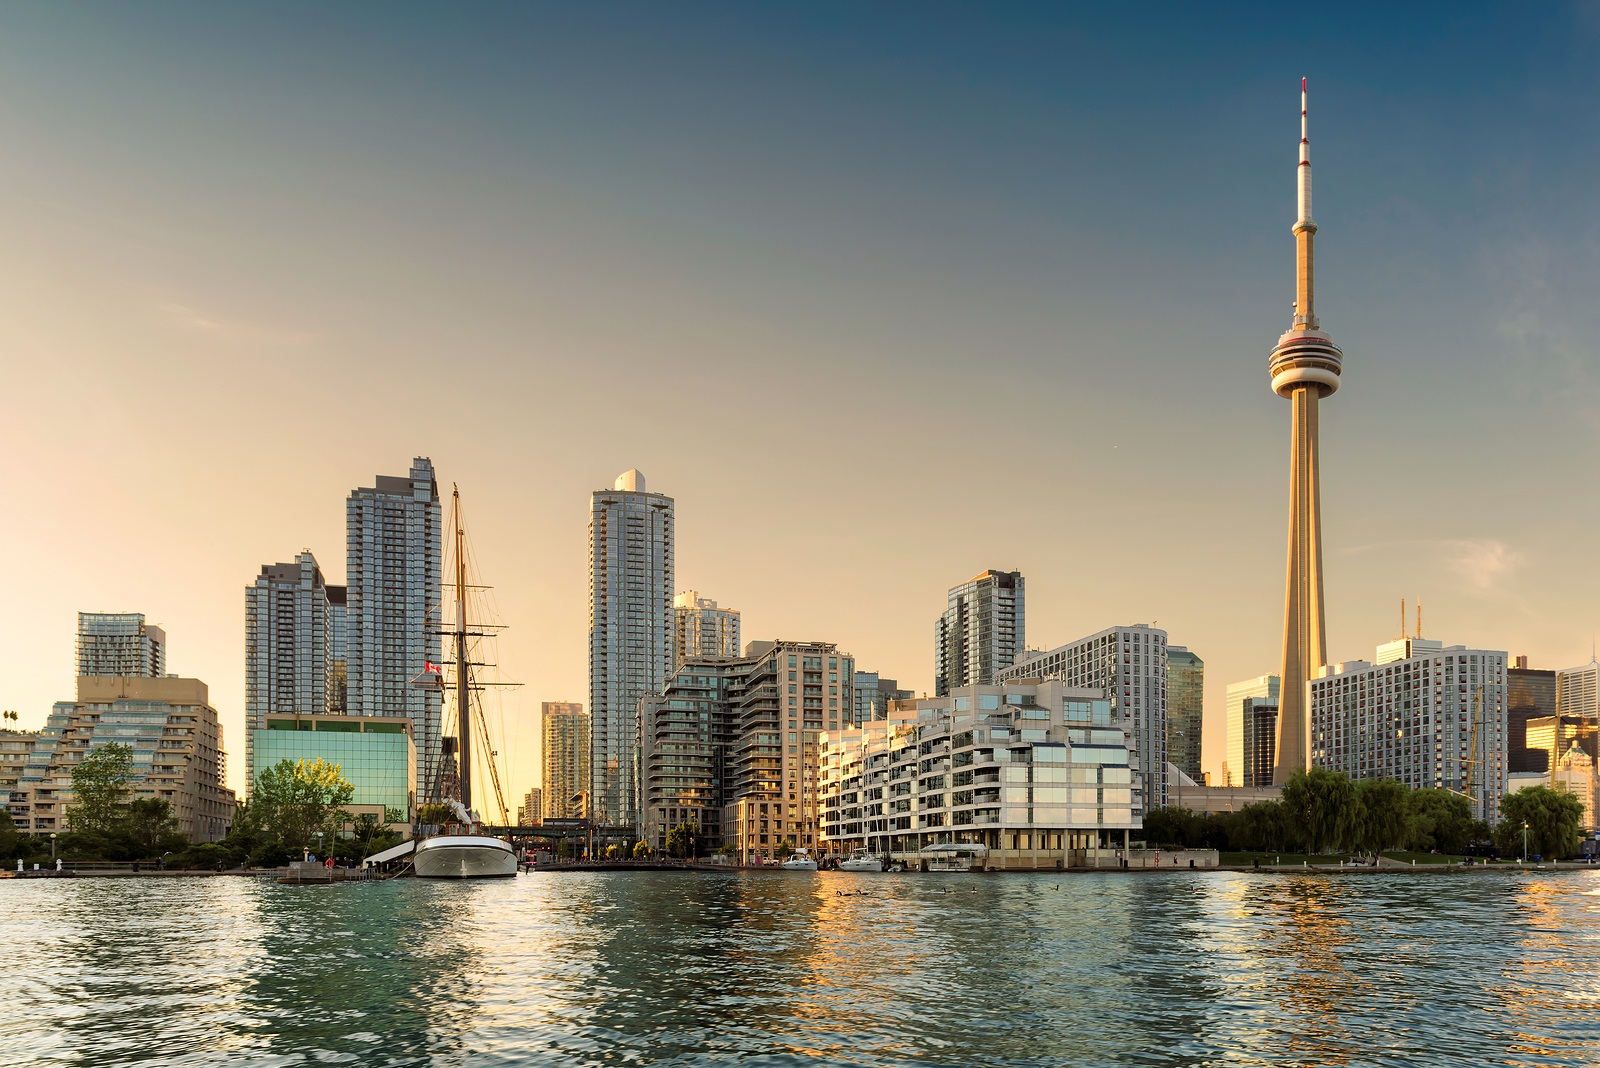 Interested in New Condo Development Projects in Toronto or the GTA? 5 Things to Know Before Buying